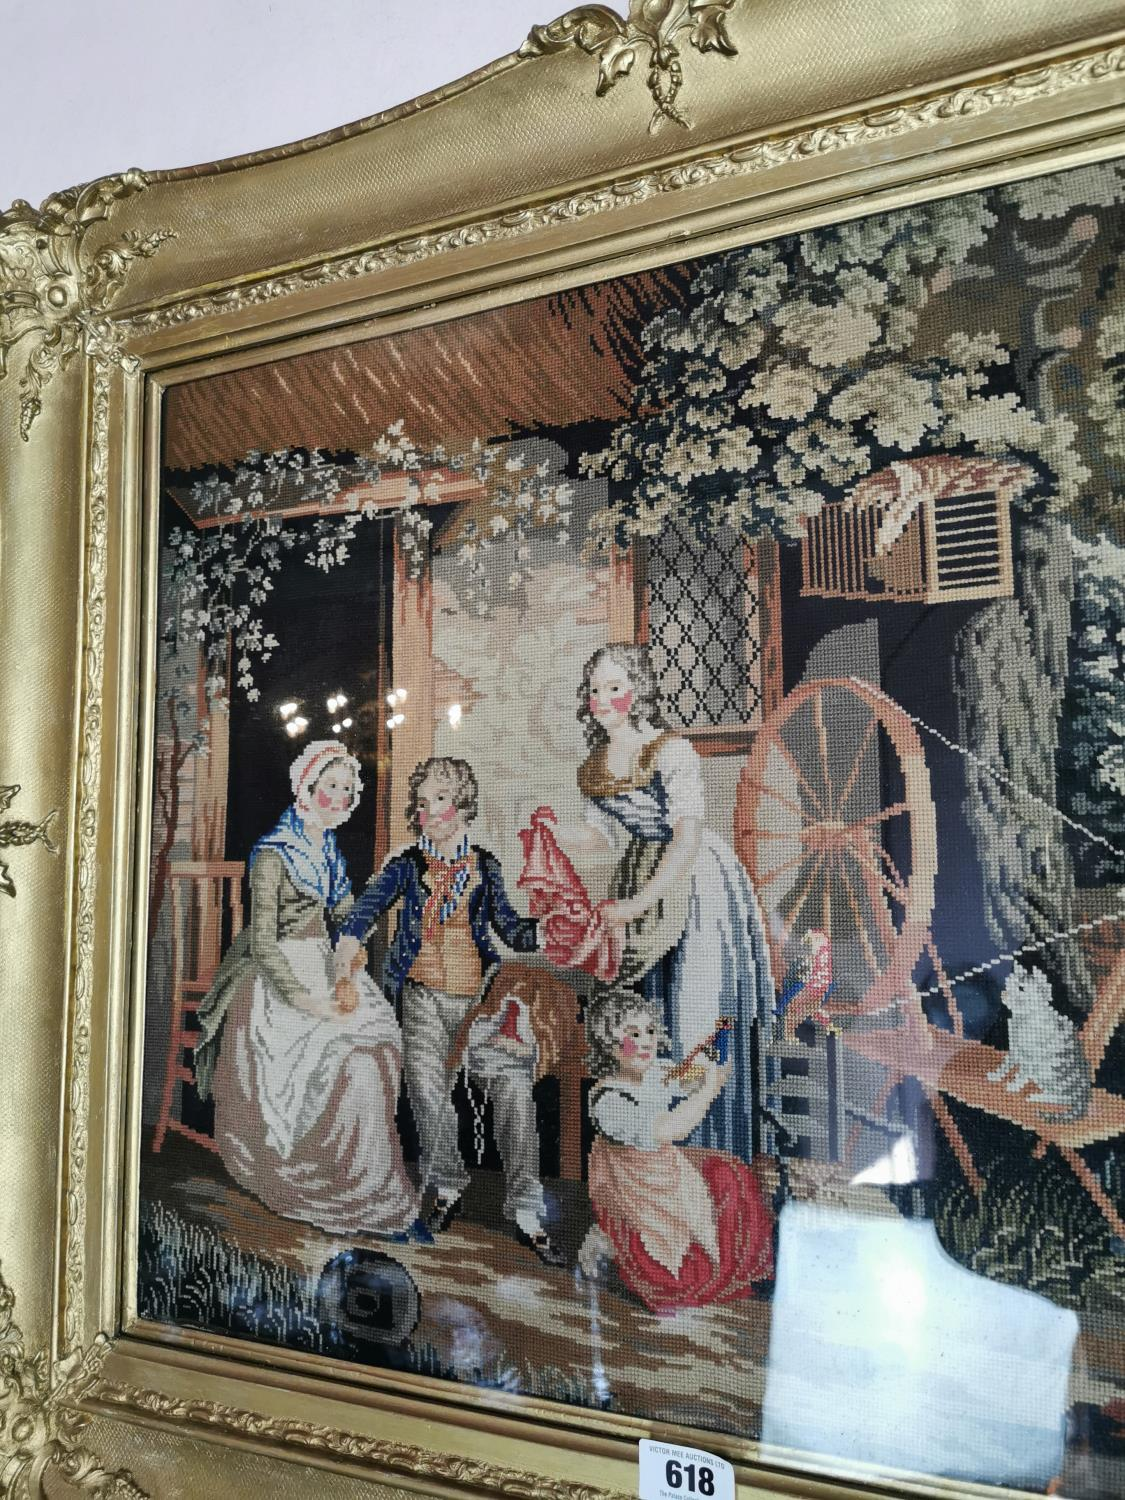 Early 20th C. tapestry Family scene. - Image 2 of 3